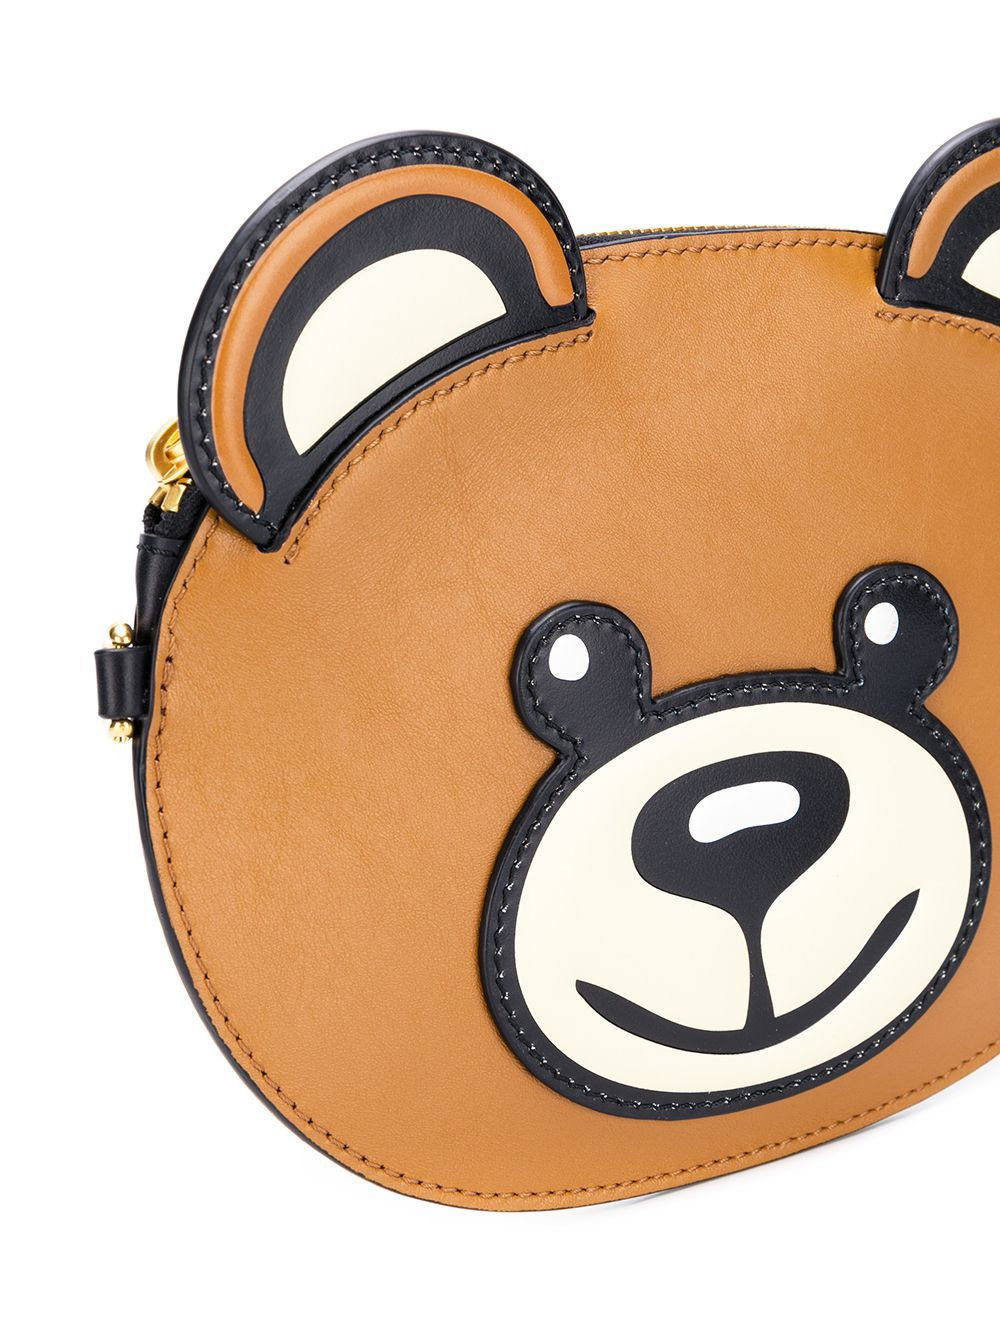 MOSCHINO | клатч 'Teddybear' | Clouty